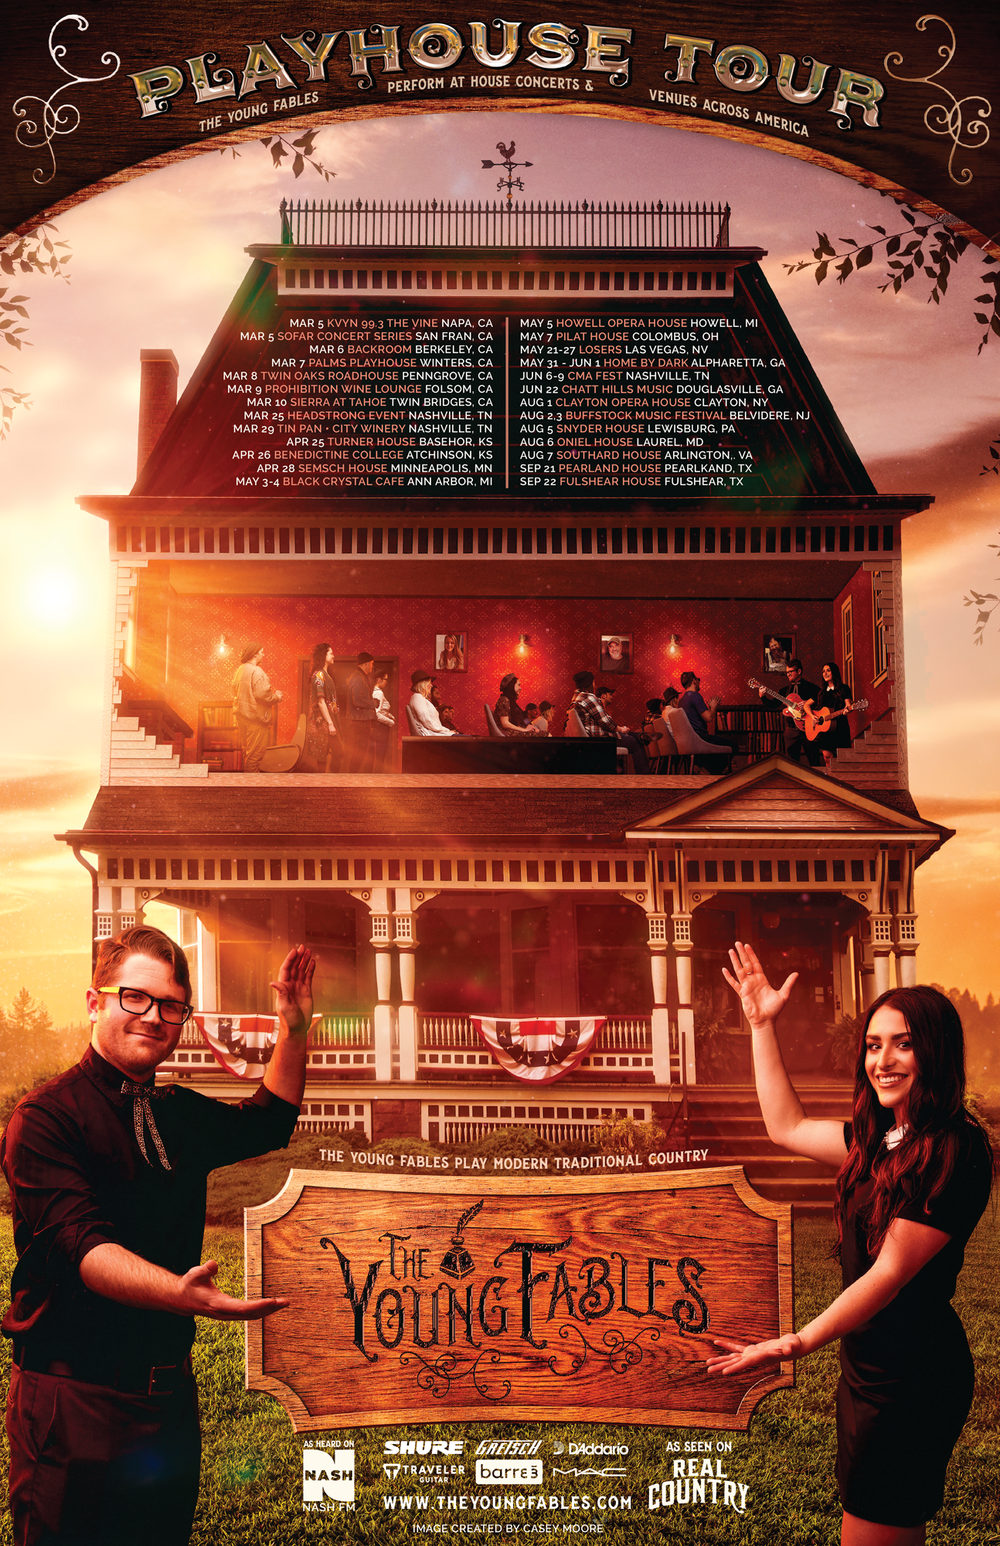 FULL PLAYHOUSE TOUR FINAL V3 Web.png